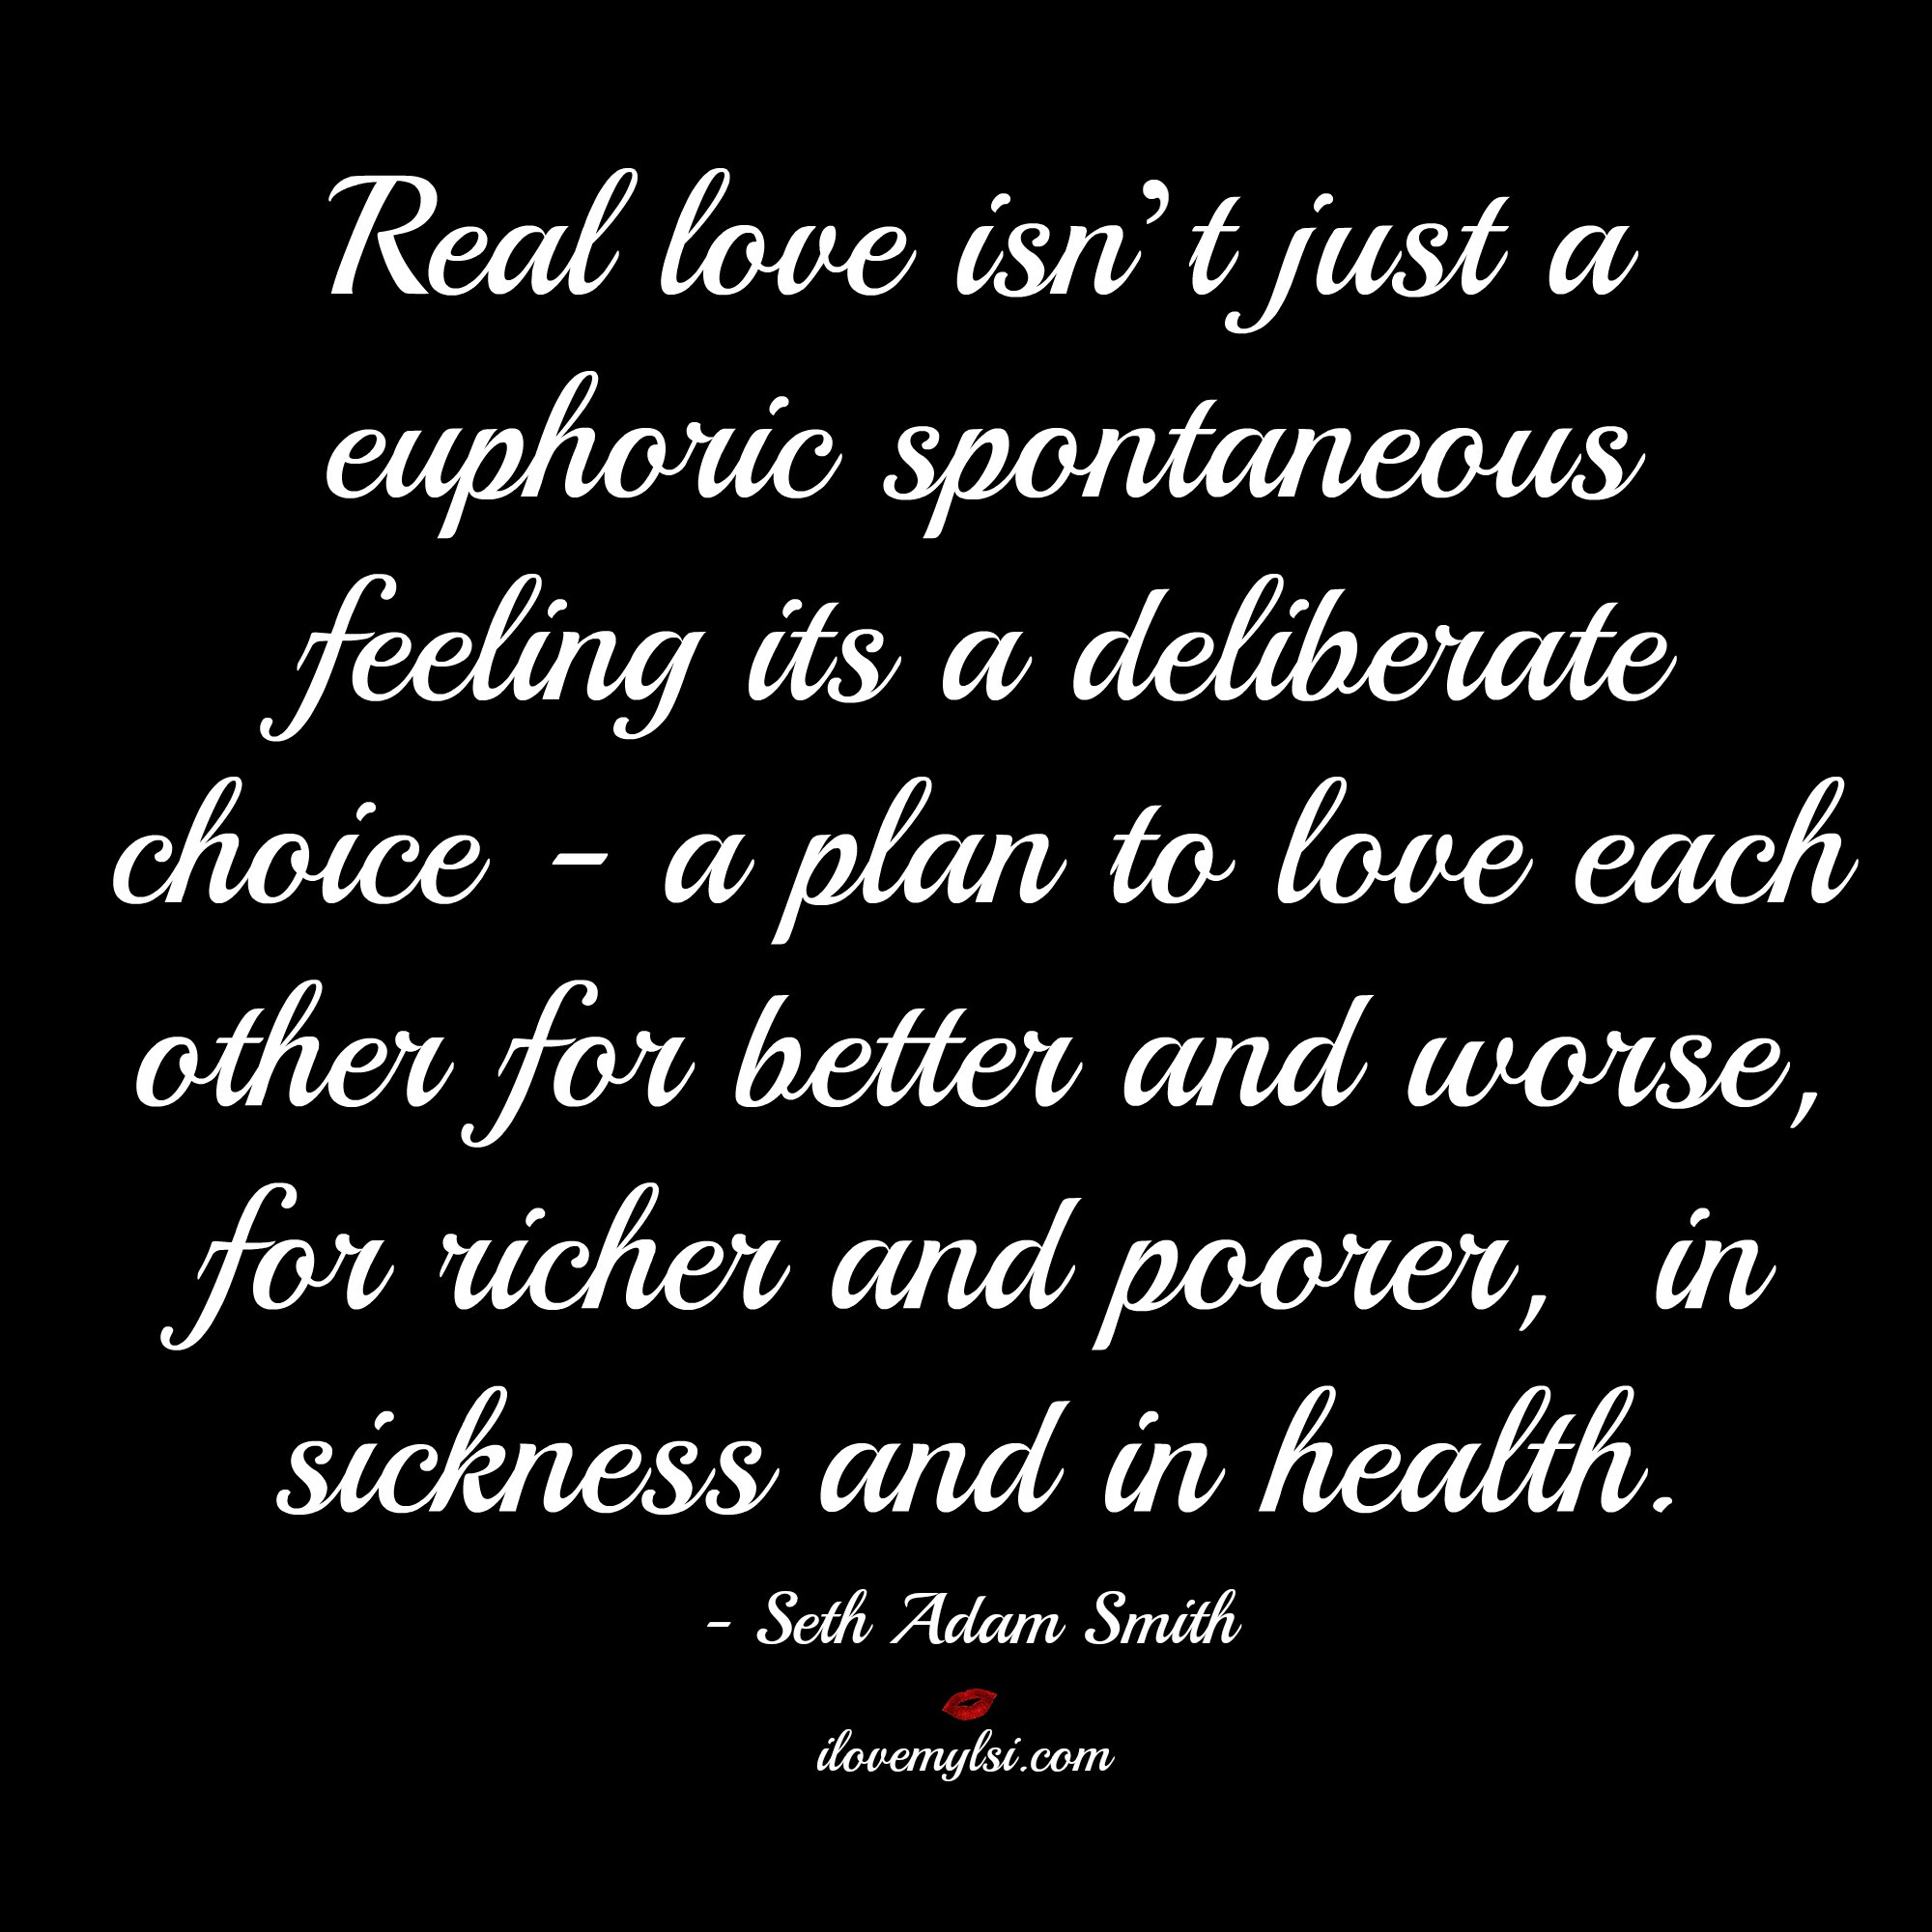 Real love isn t just a euphoric spontaneous feeling it s a deliberate choice